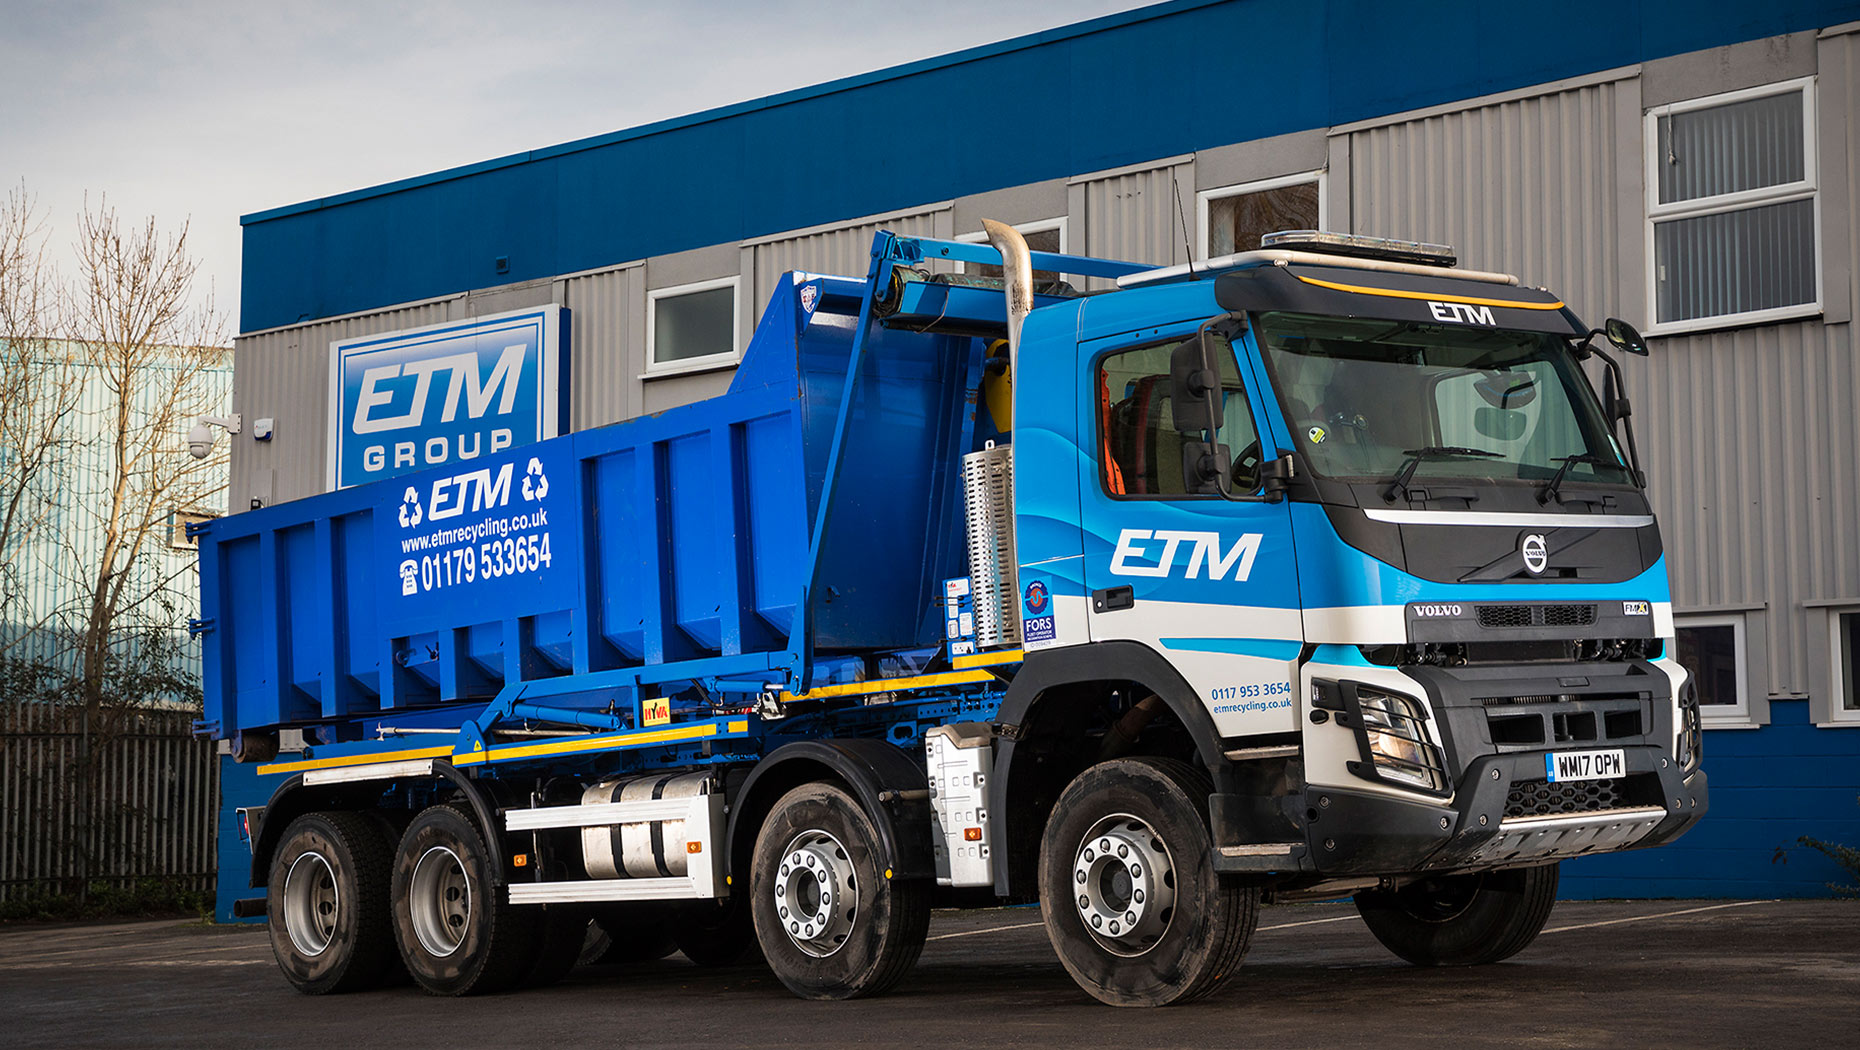 Volvo Trucks range brings change at ETM recycling